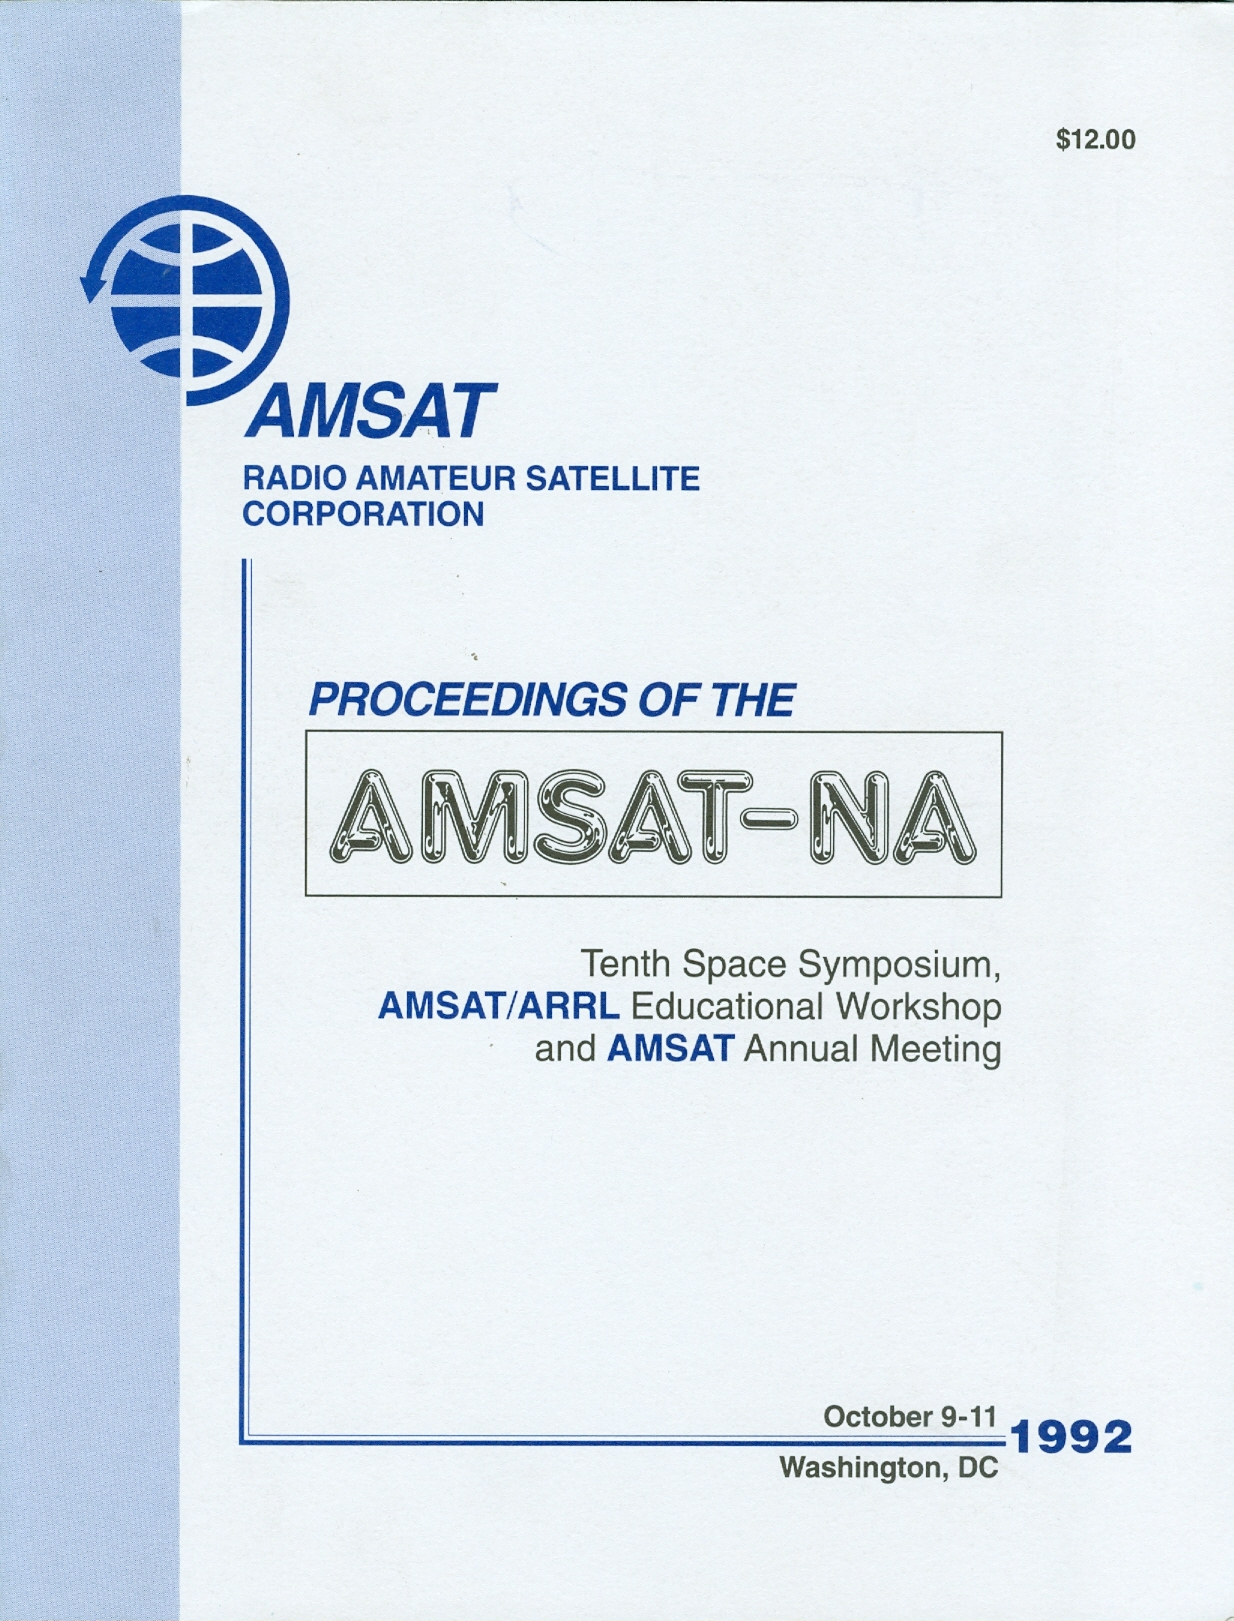 Proceedings of the AMSAT-NA Tenth Space Symposium, AMSAT/ARRL Educational Workshop, and AMSAT Annual Meeting